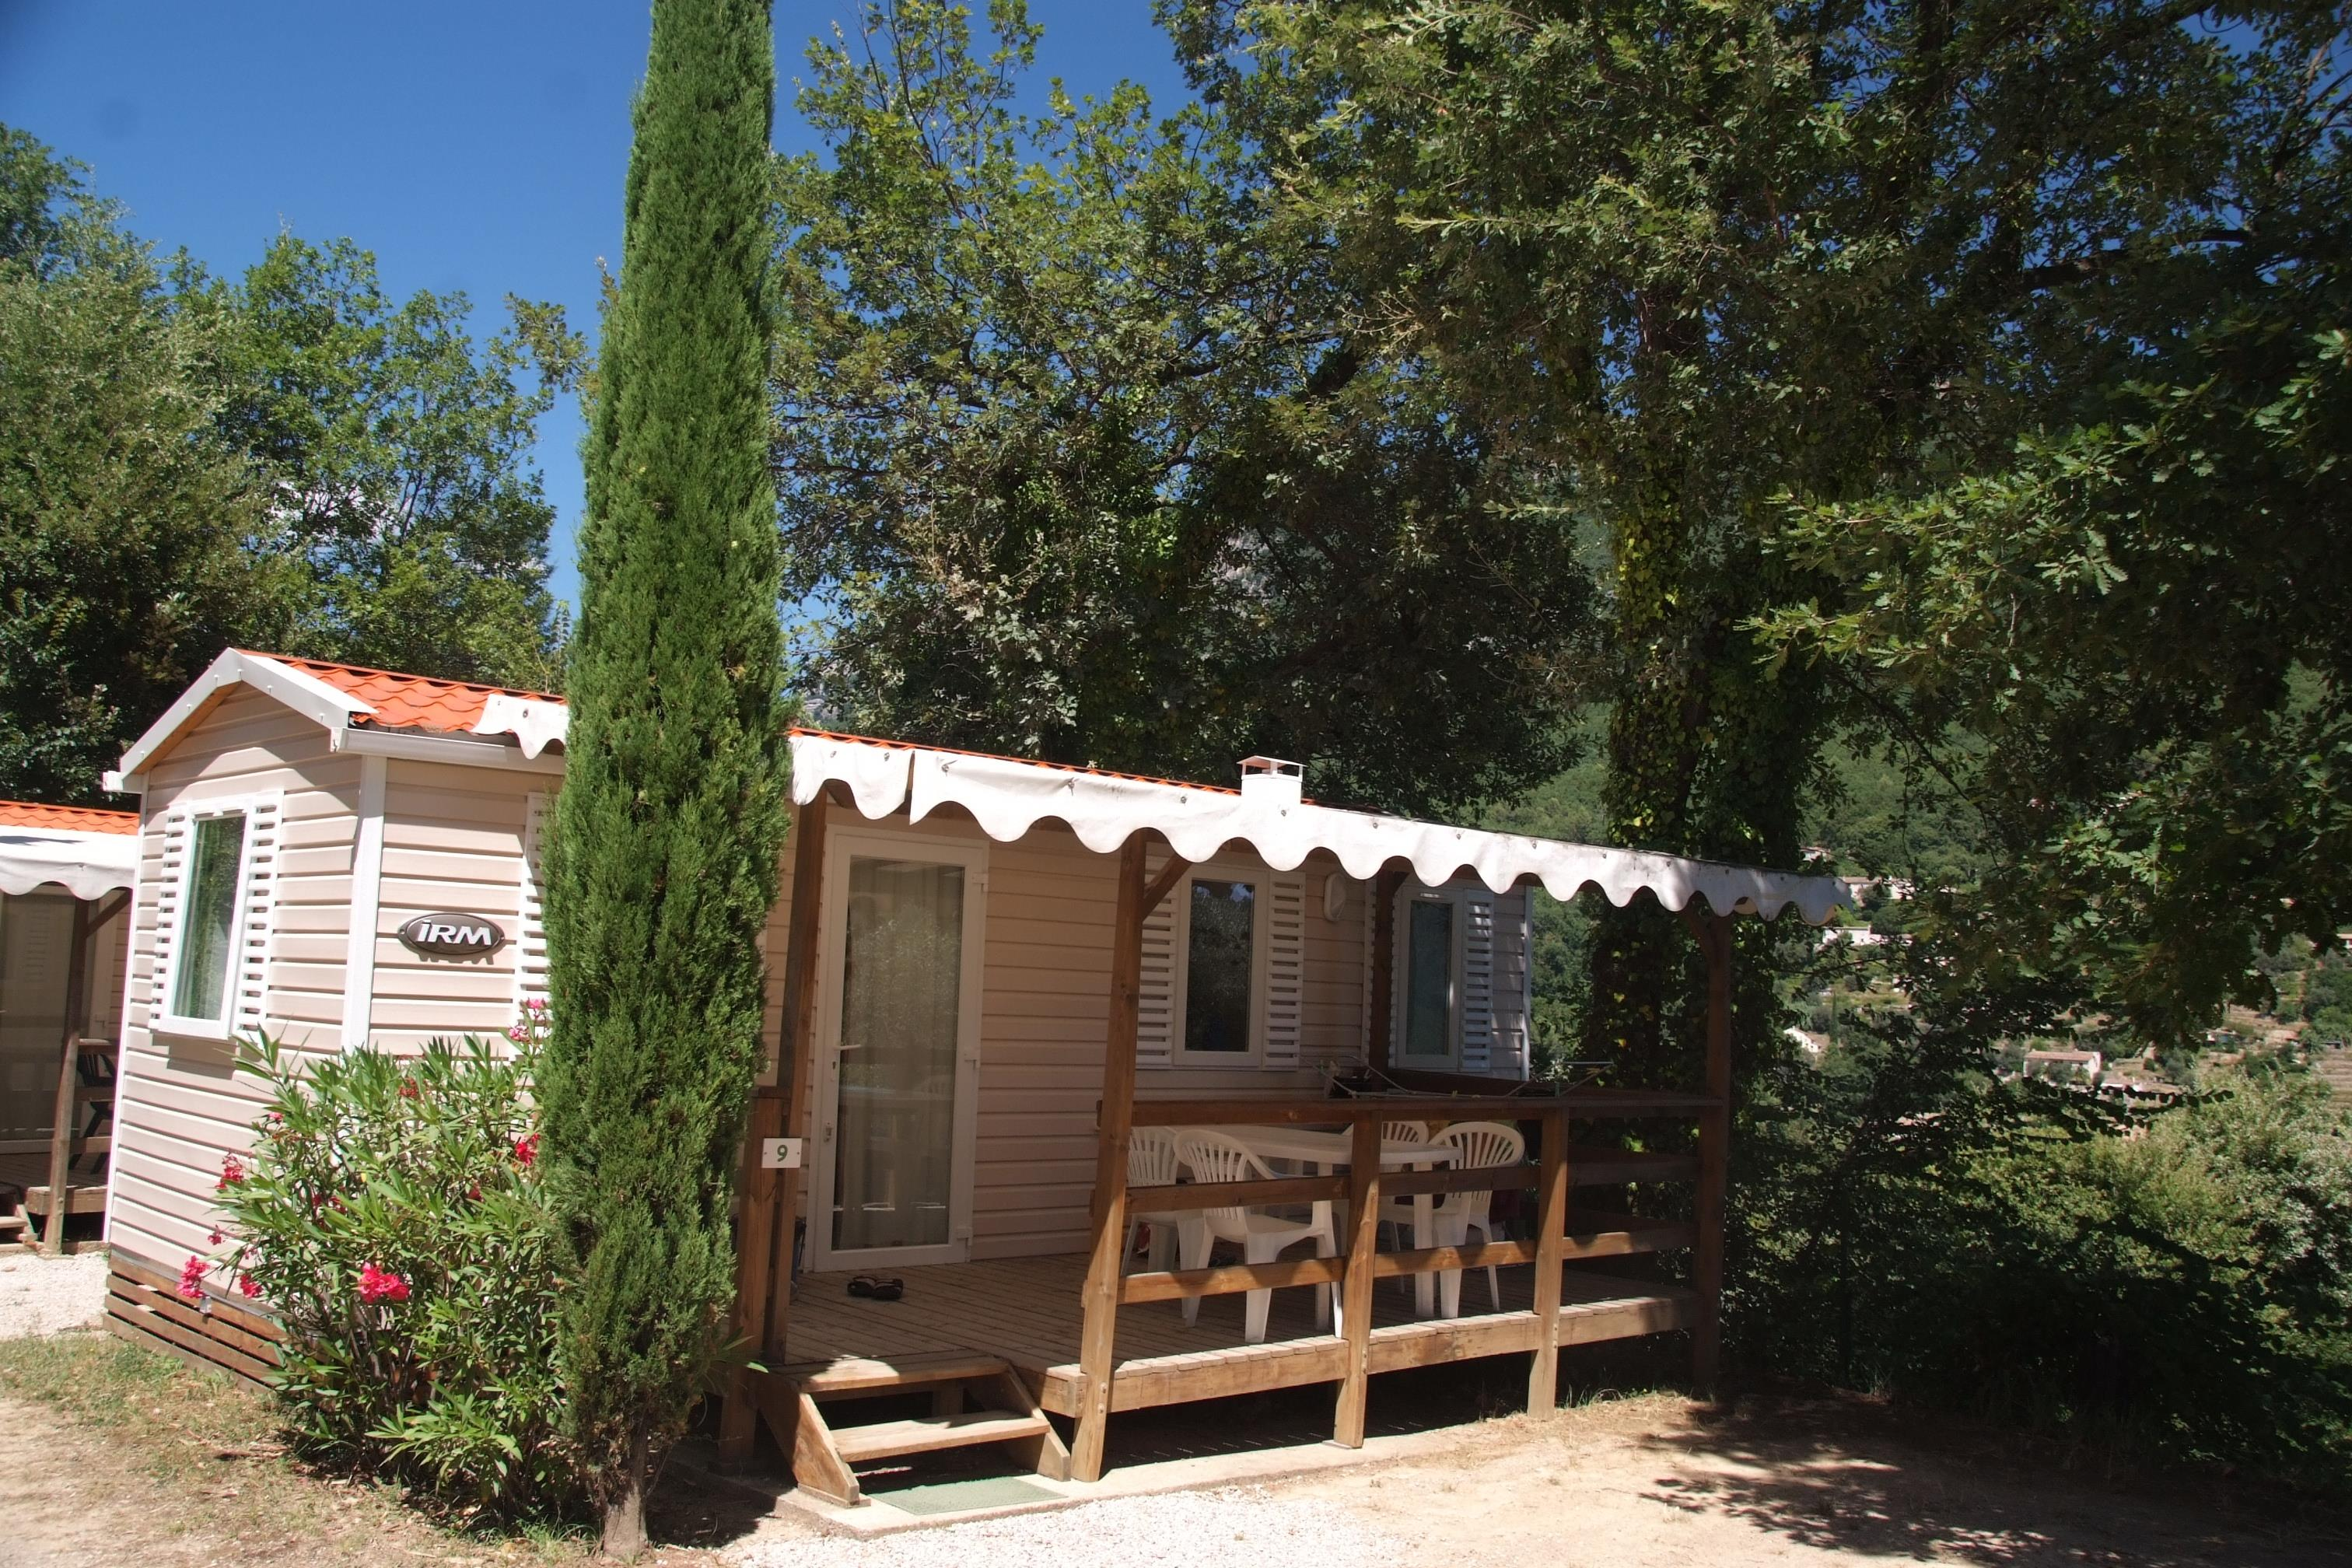 Location - Mobilhome Tout Confort (2 Chambres) + Terrasse - Camping Les Gorges du Loup